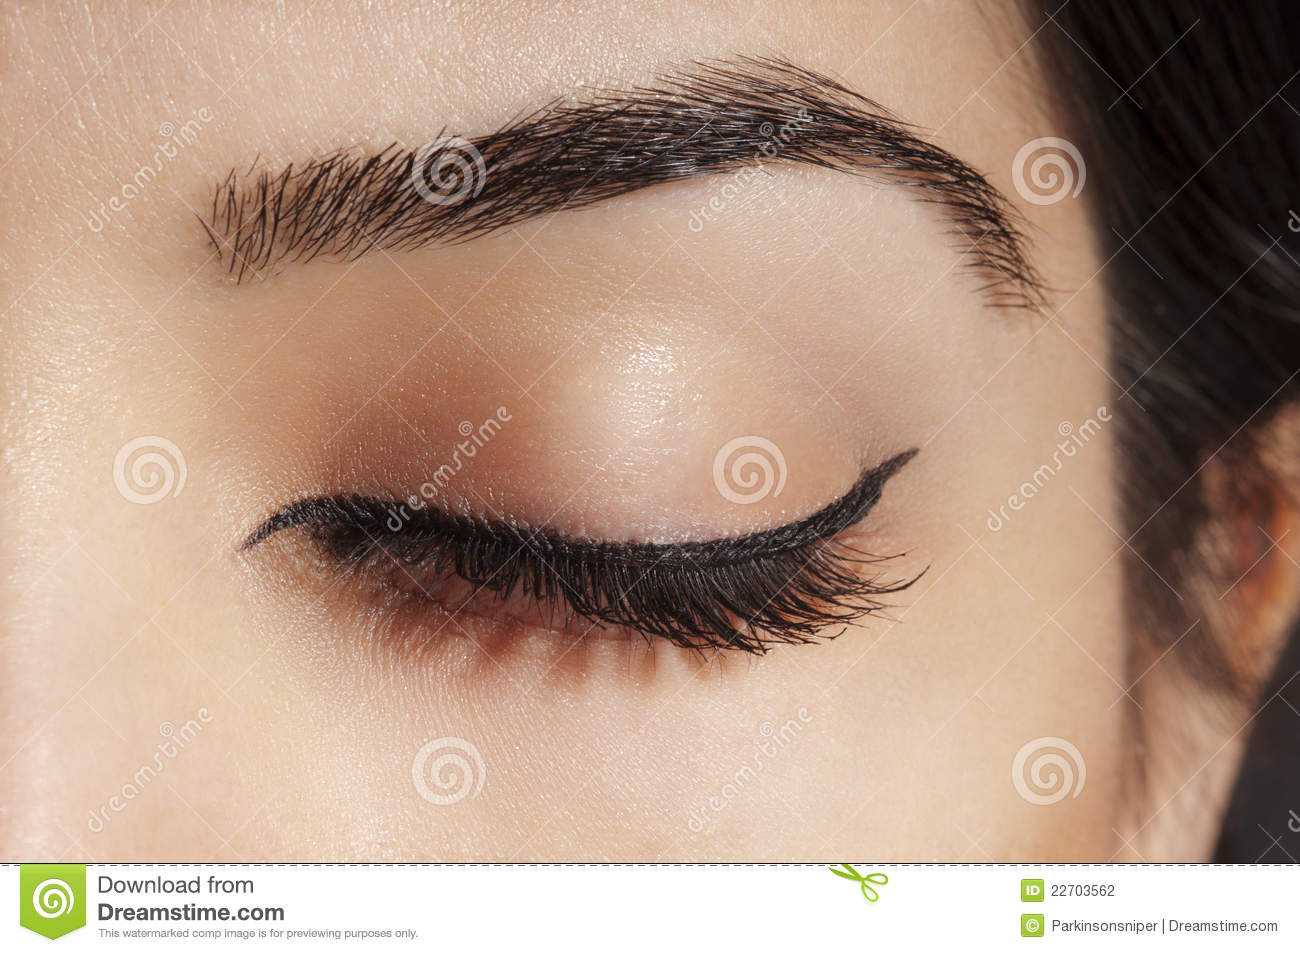 Eyeliner on Closed Eye